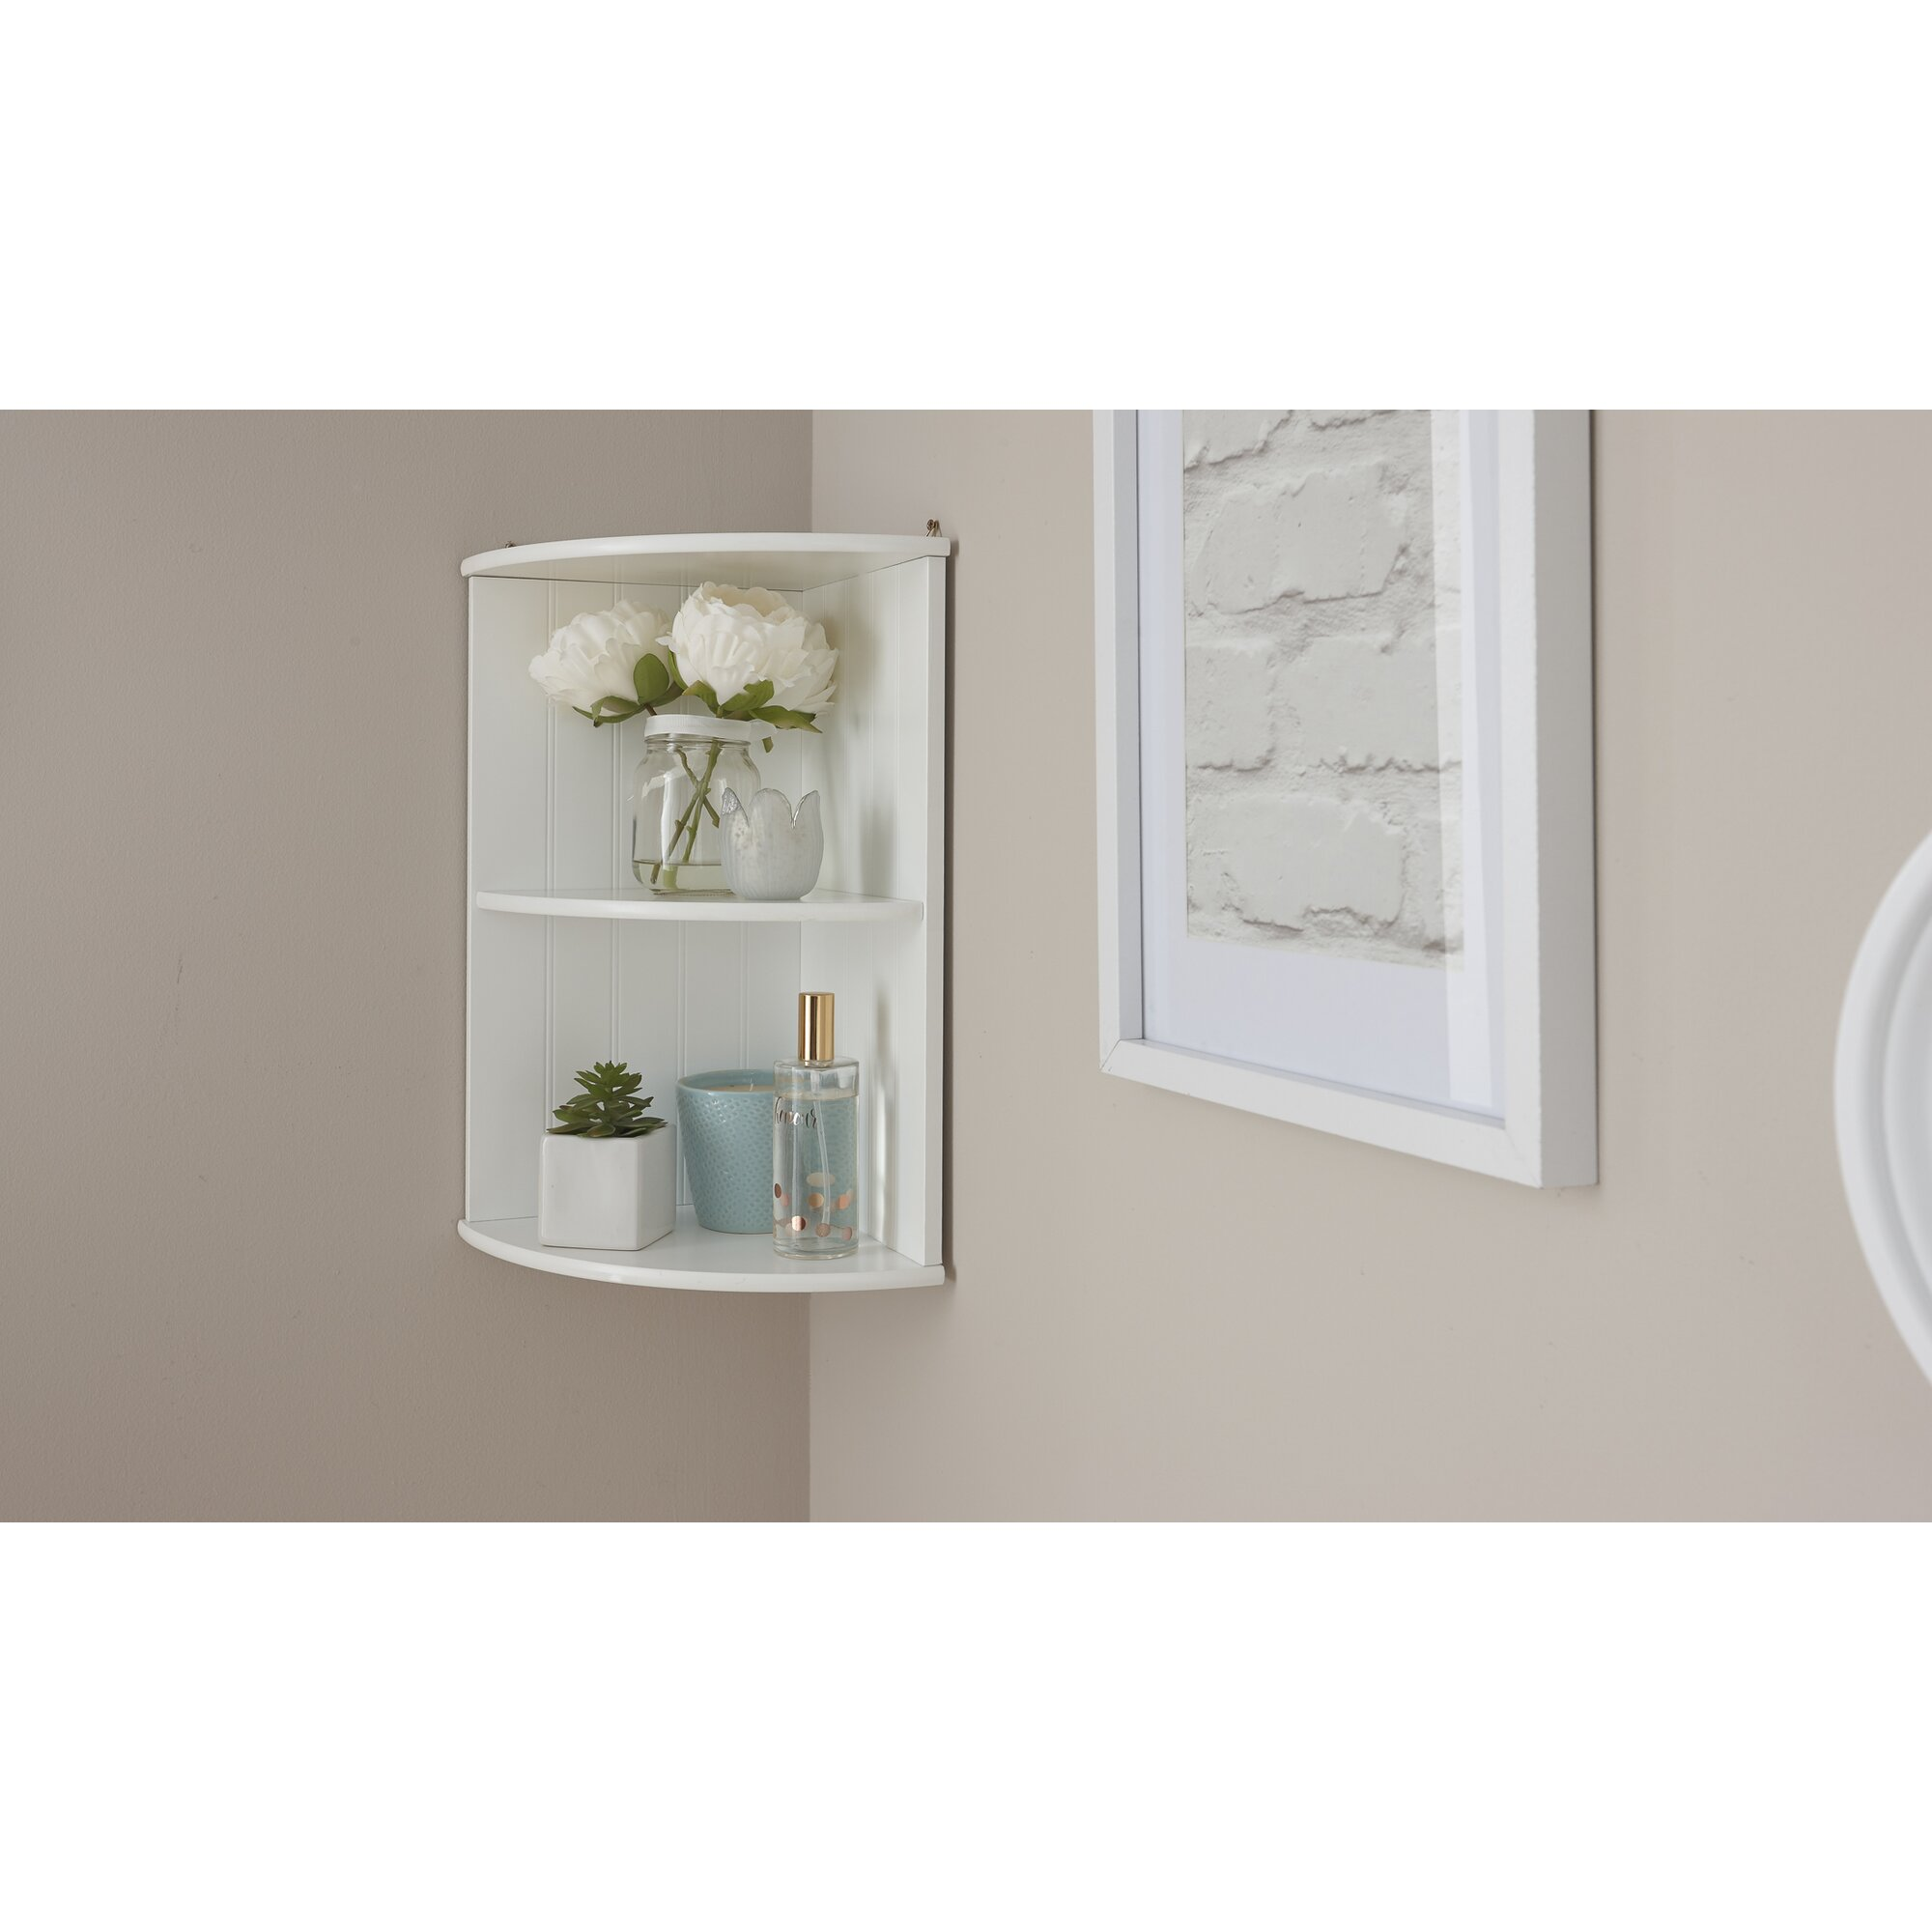 Fju00f8rde u0026 Co Turku 25 x 50cm Bathroom Shelf u0026 Reviews : Wayfair.co.uk